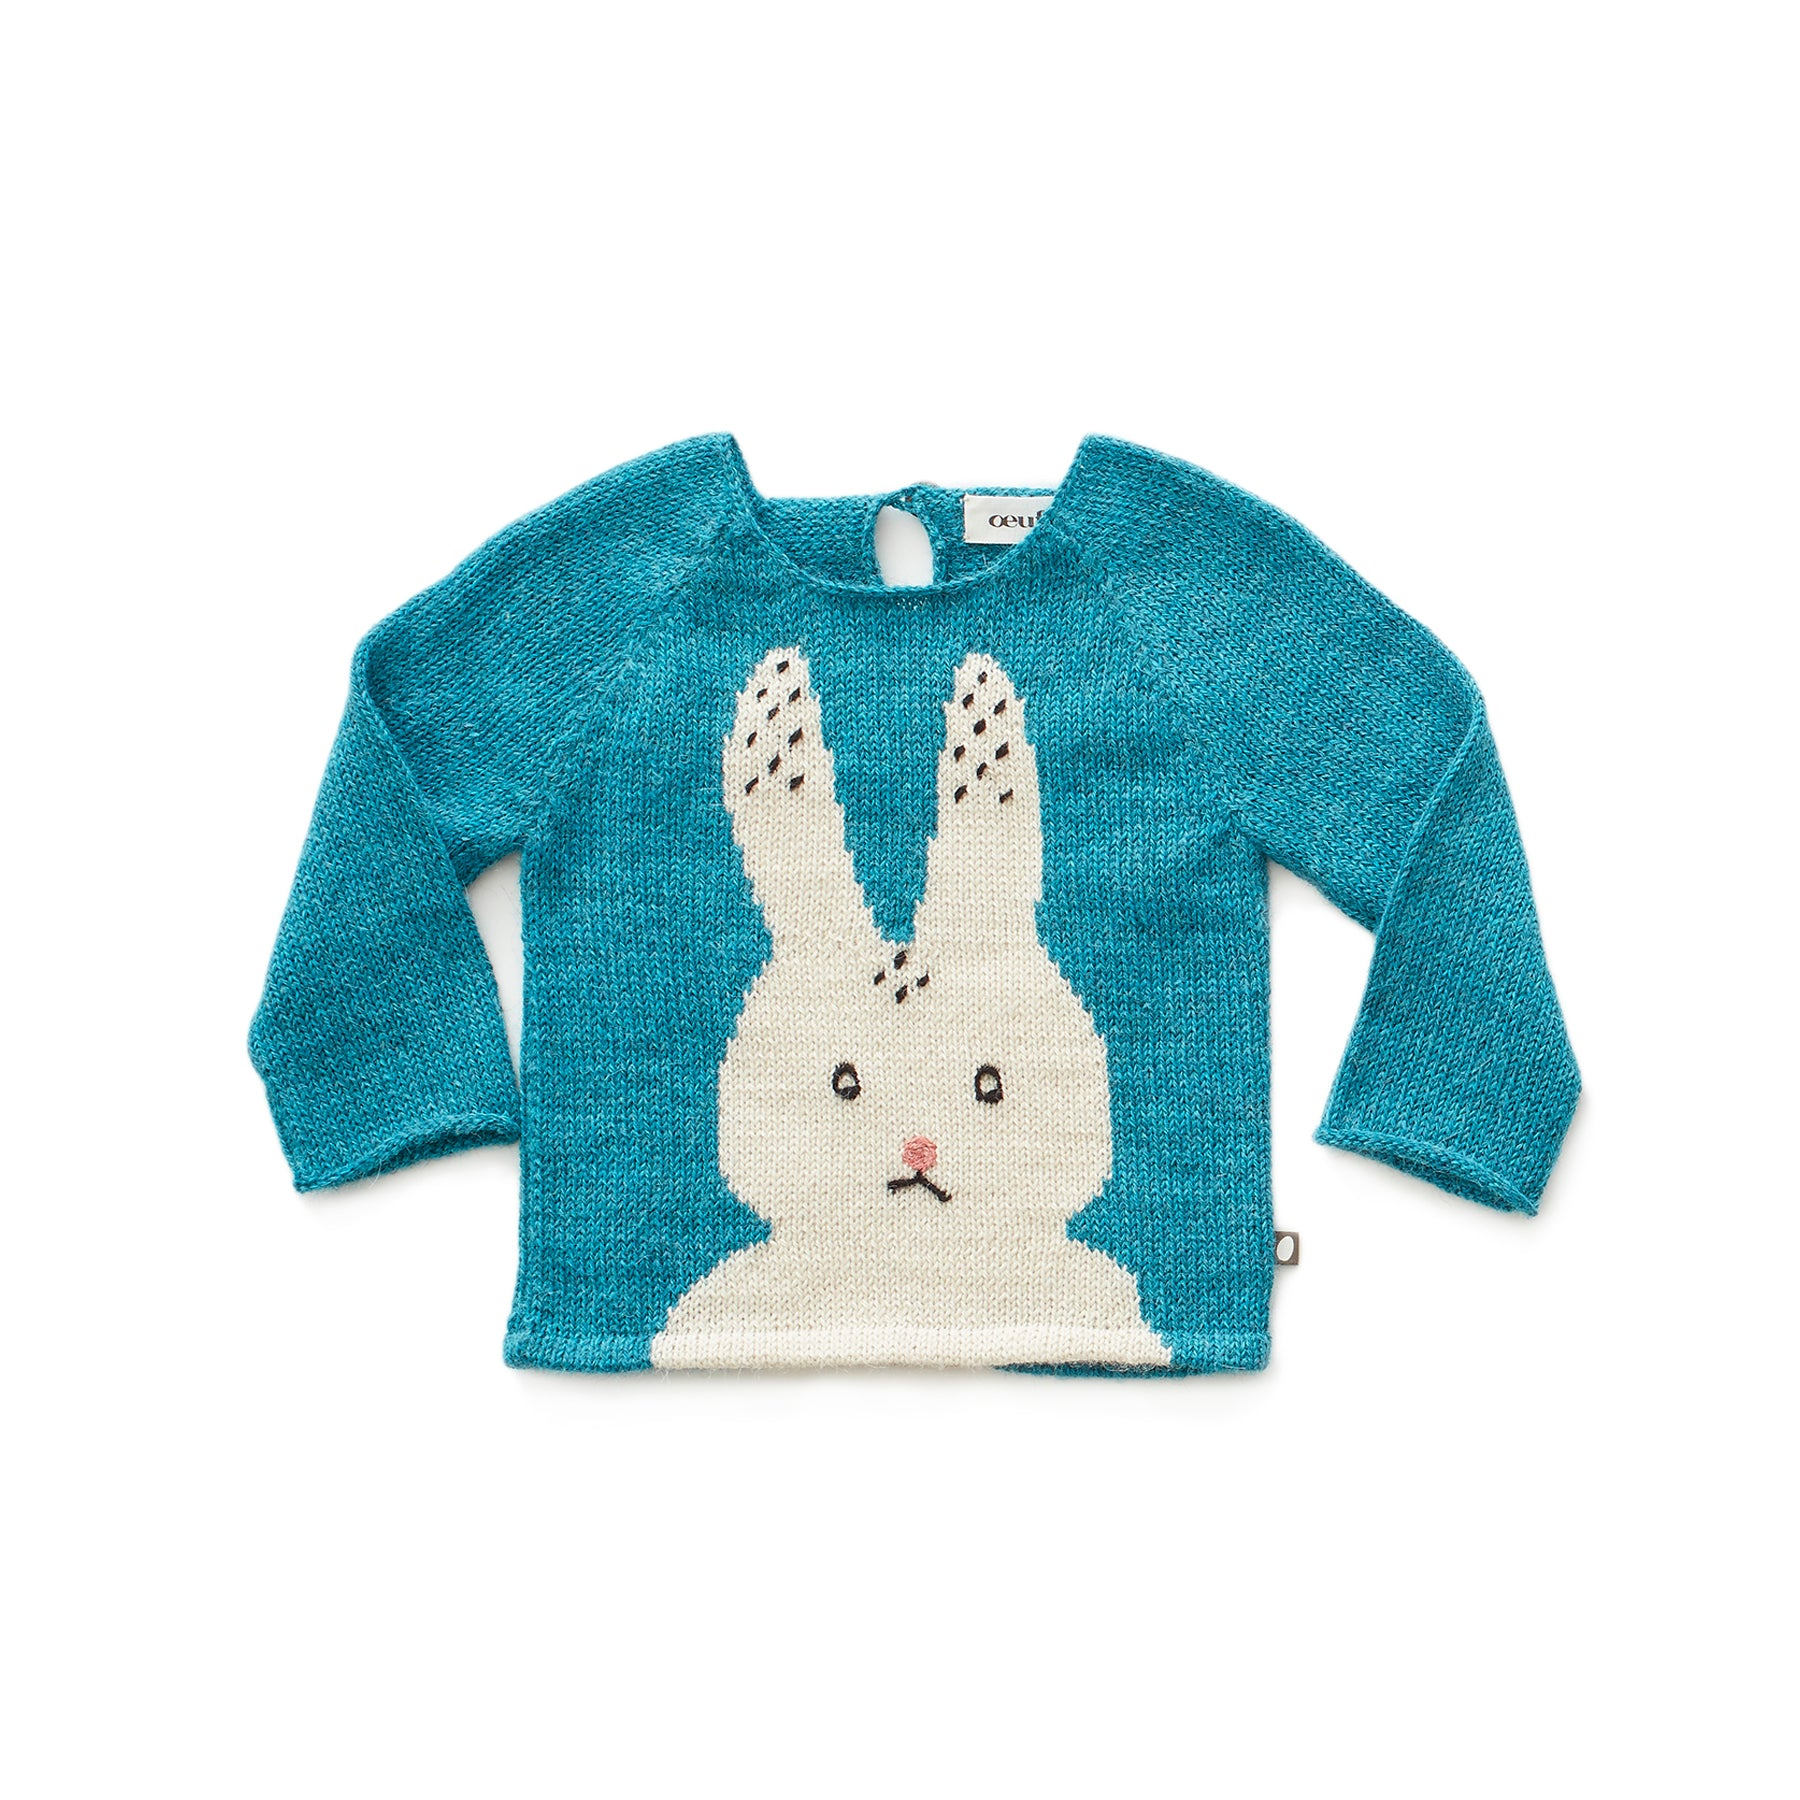 Oeuf Bunny Sweater - Ladida